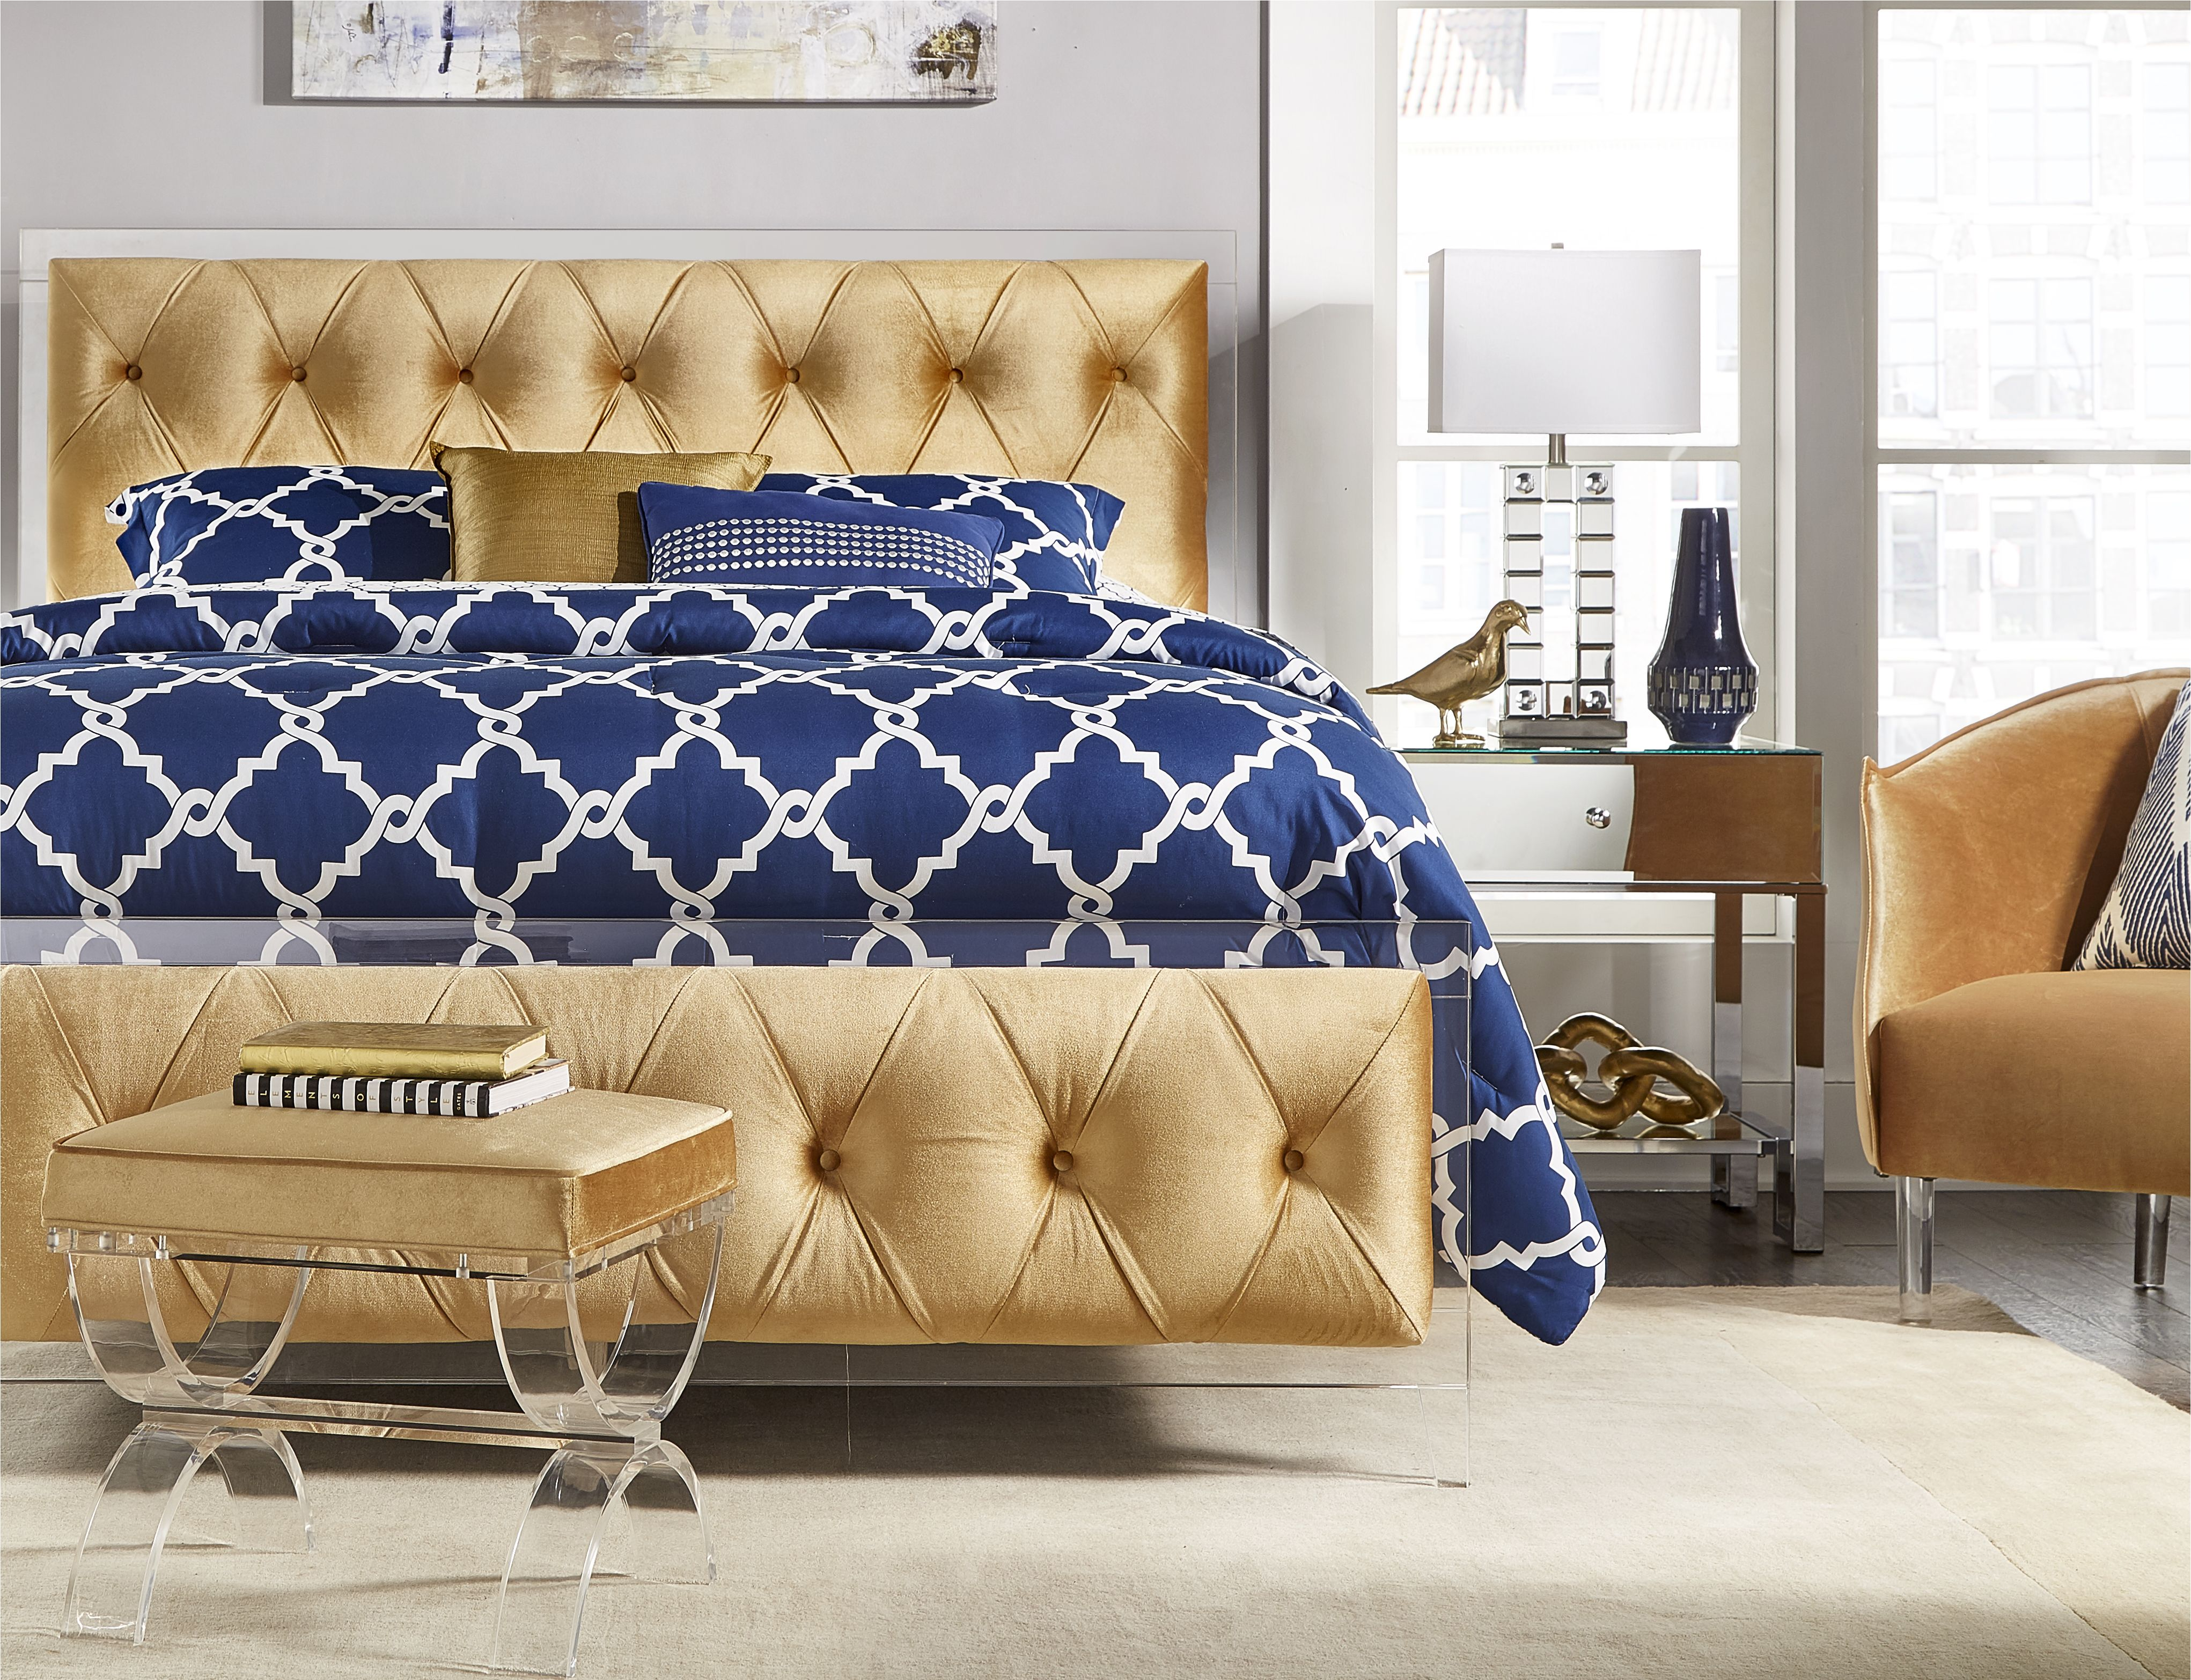 Gold Velvet Is So Luxurious And Totally Glam King Size Bedding